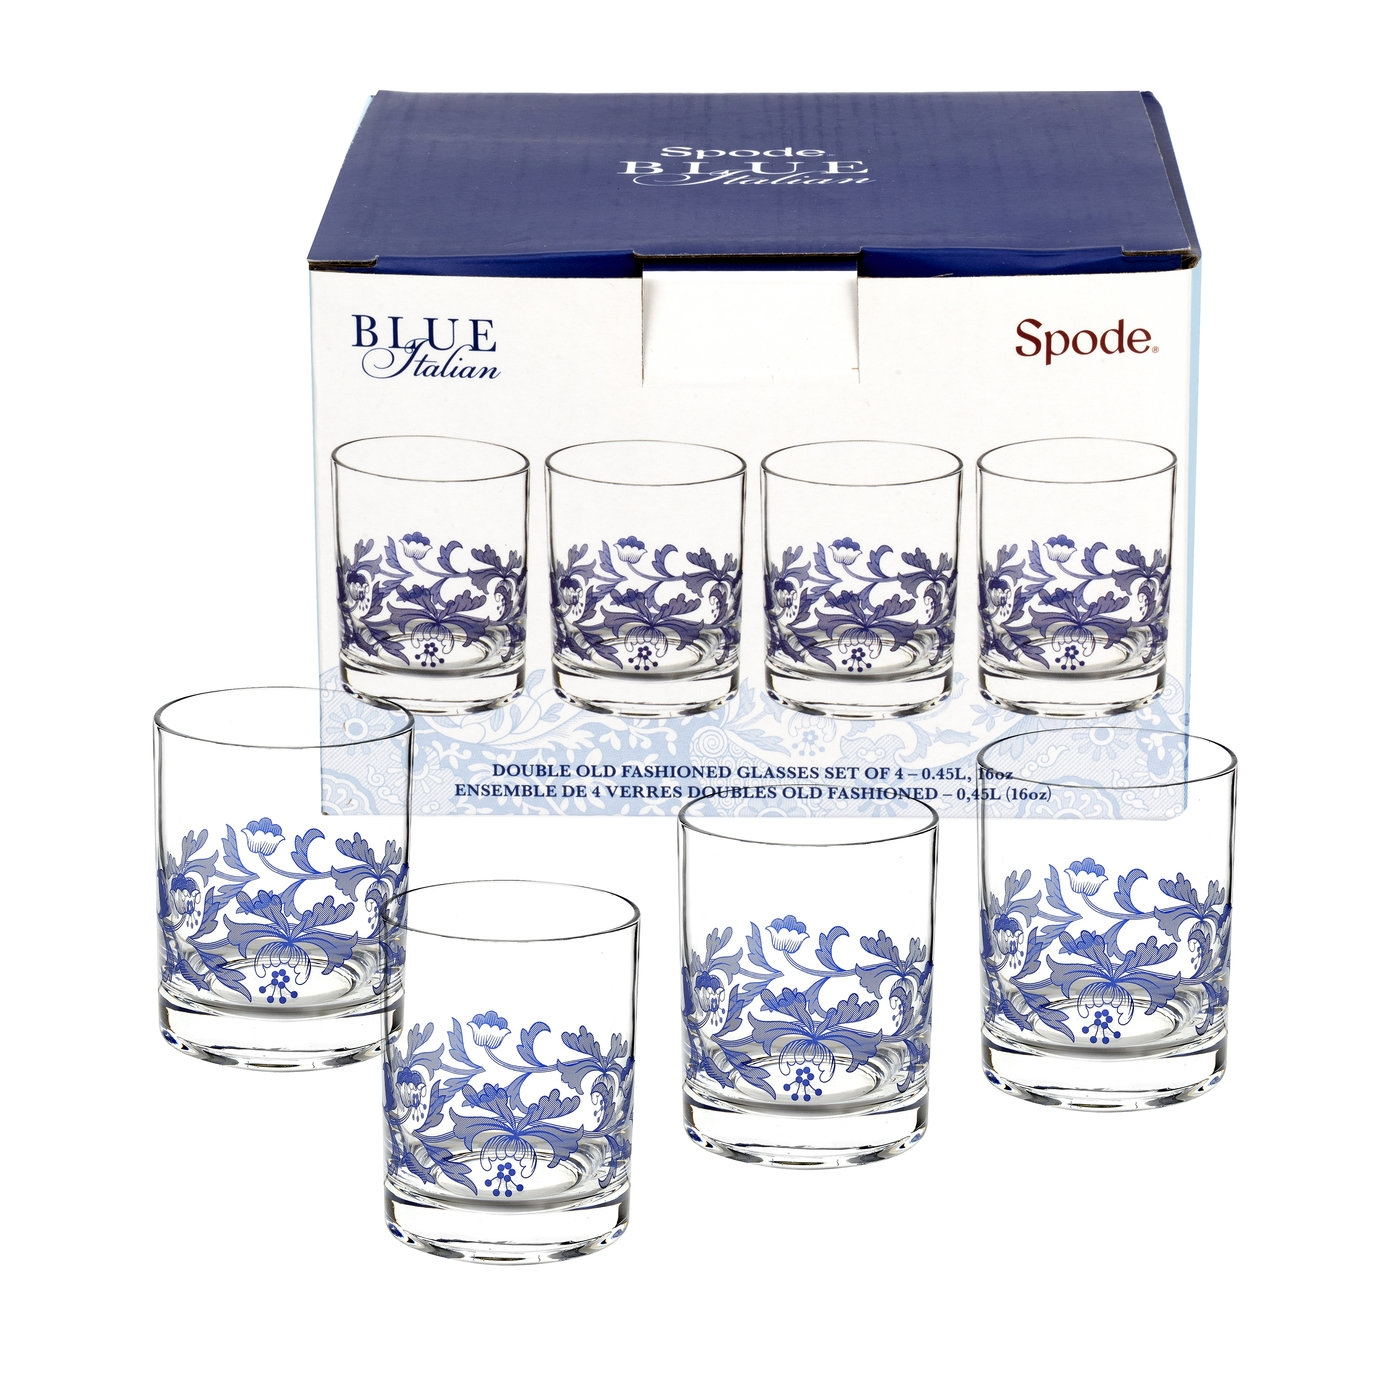 Spode Blue Italian Set of 4 Double Old Fashioned Glasses image number 0